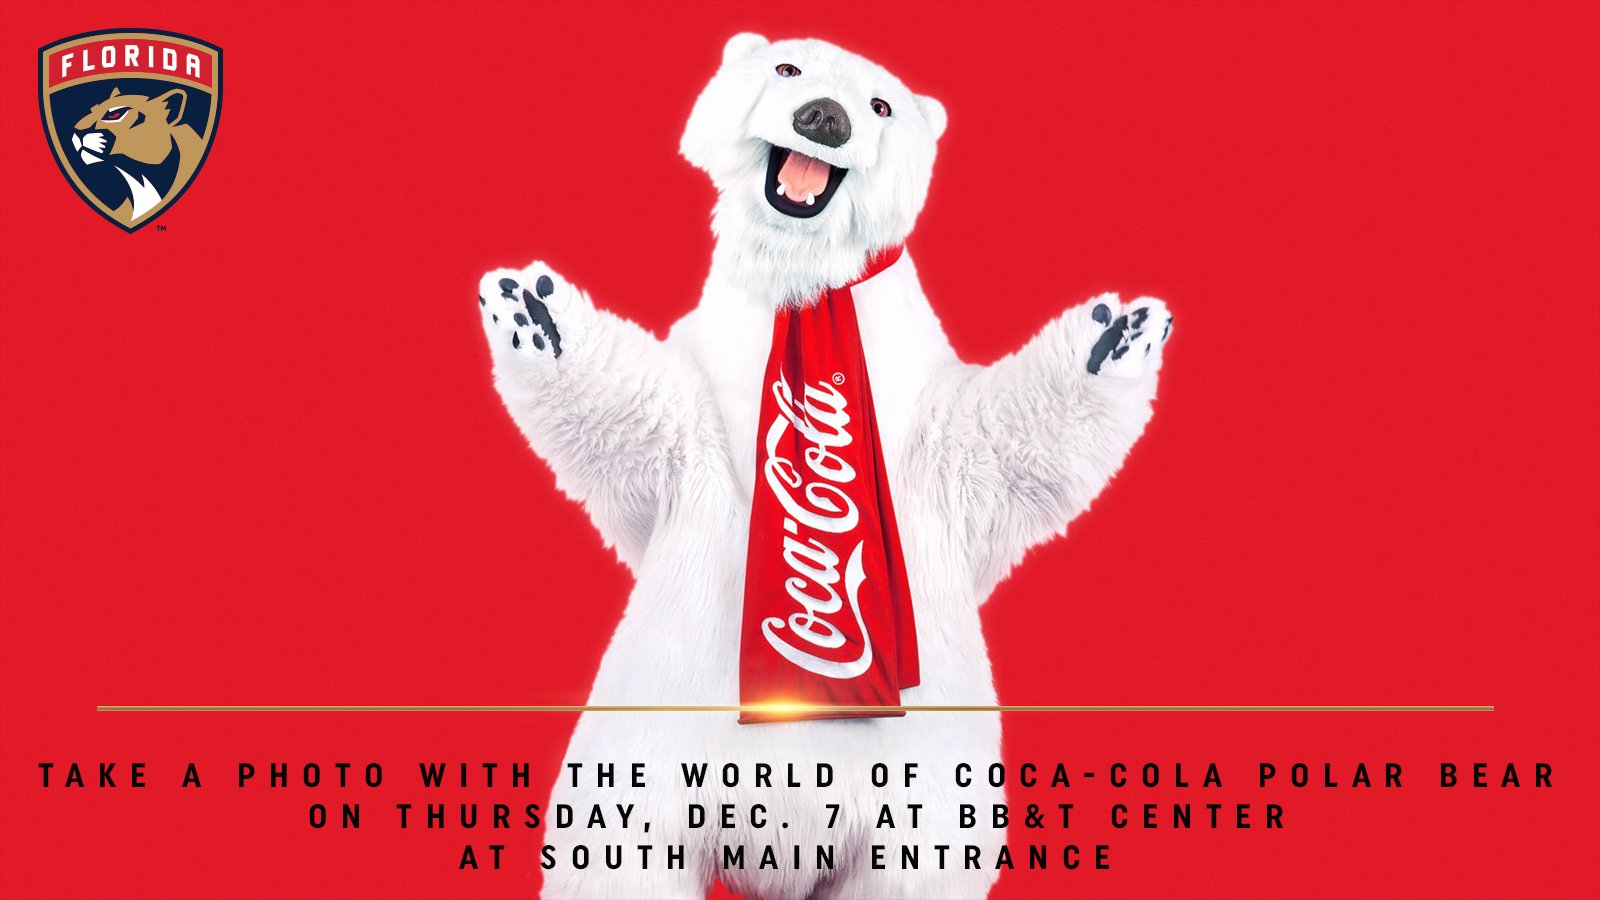 Florida Panthers On Twitter The World Of Coca Cola Polar Bear